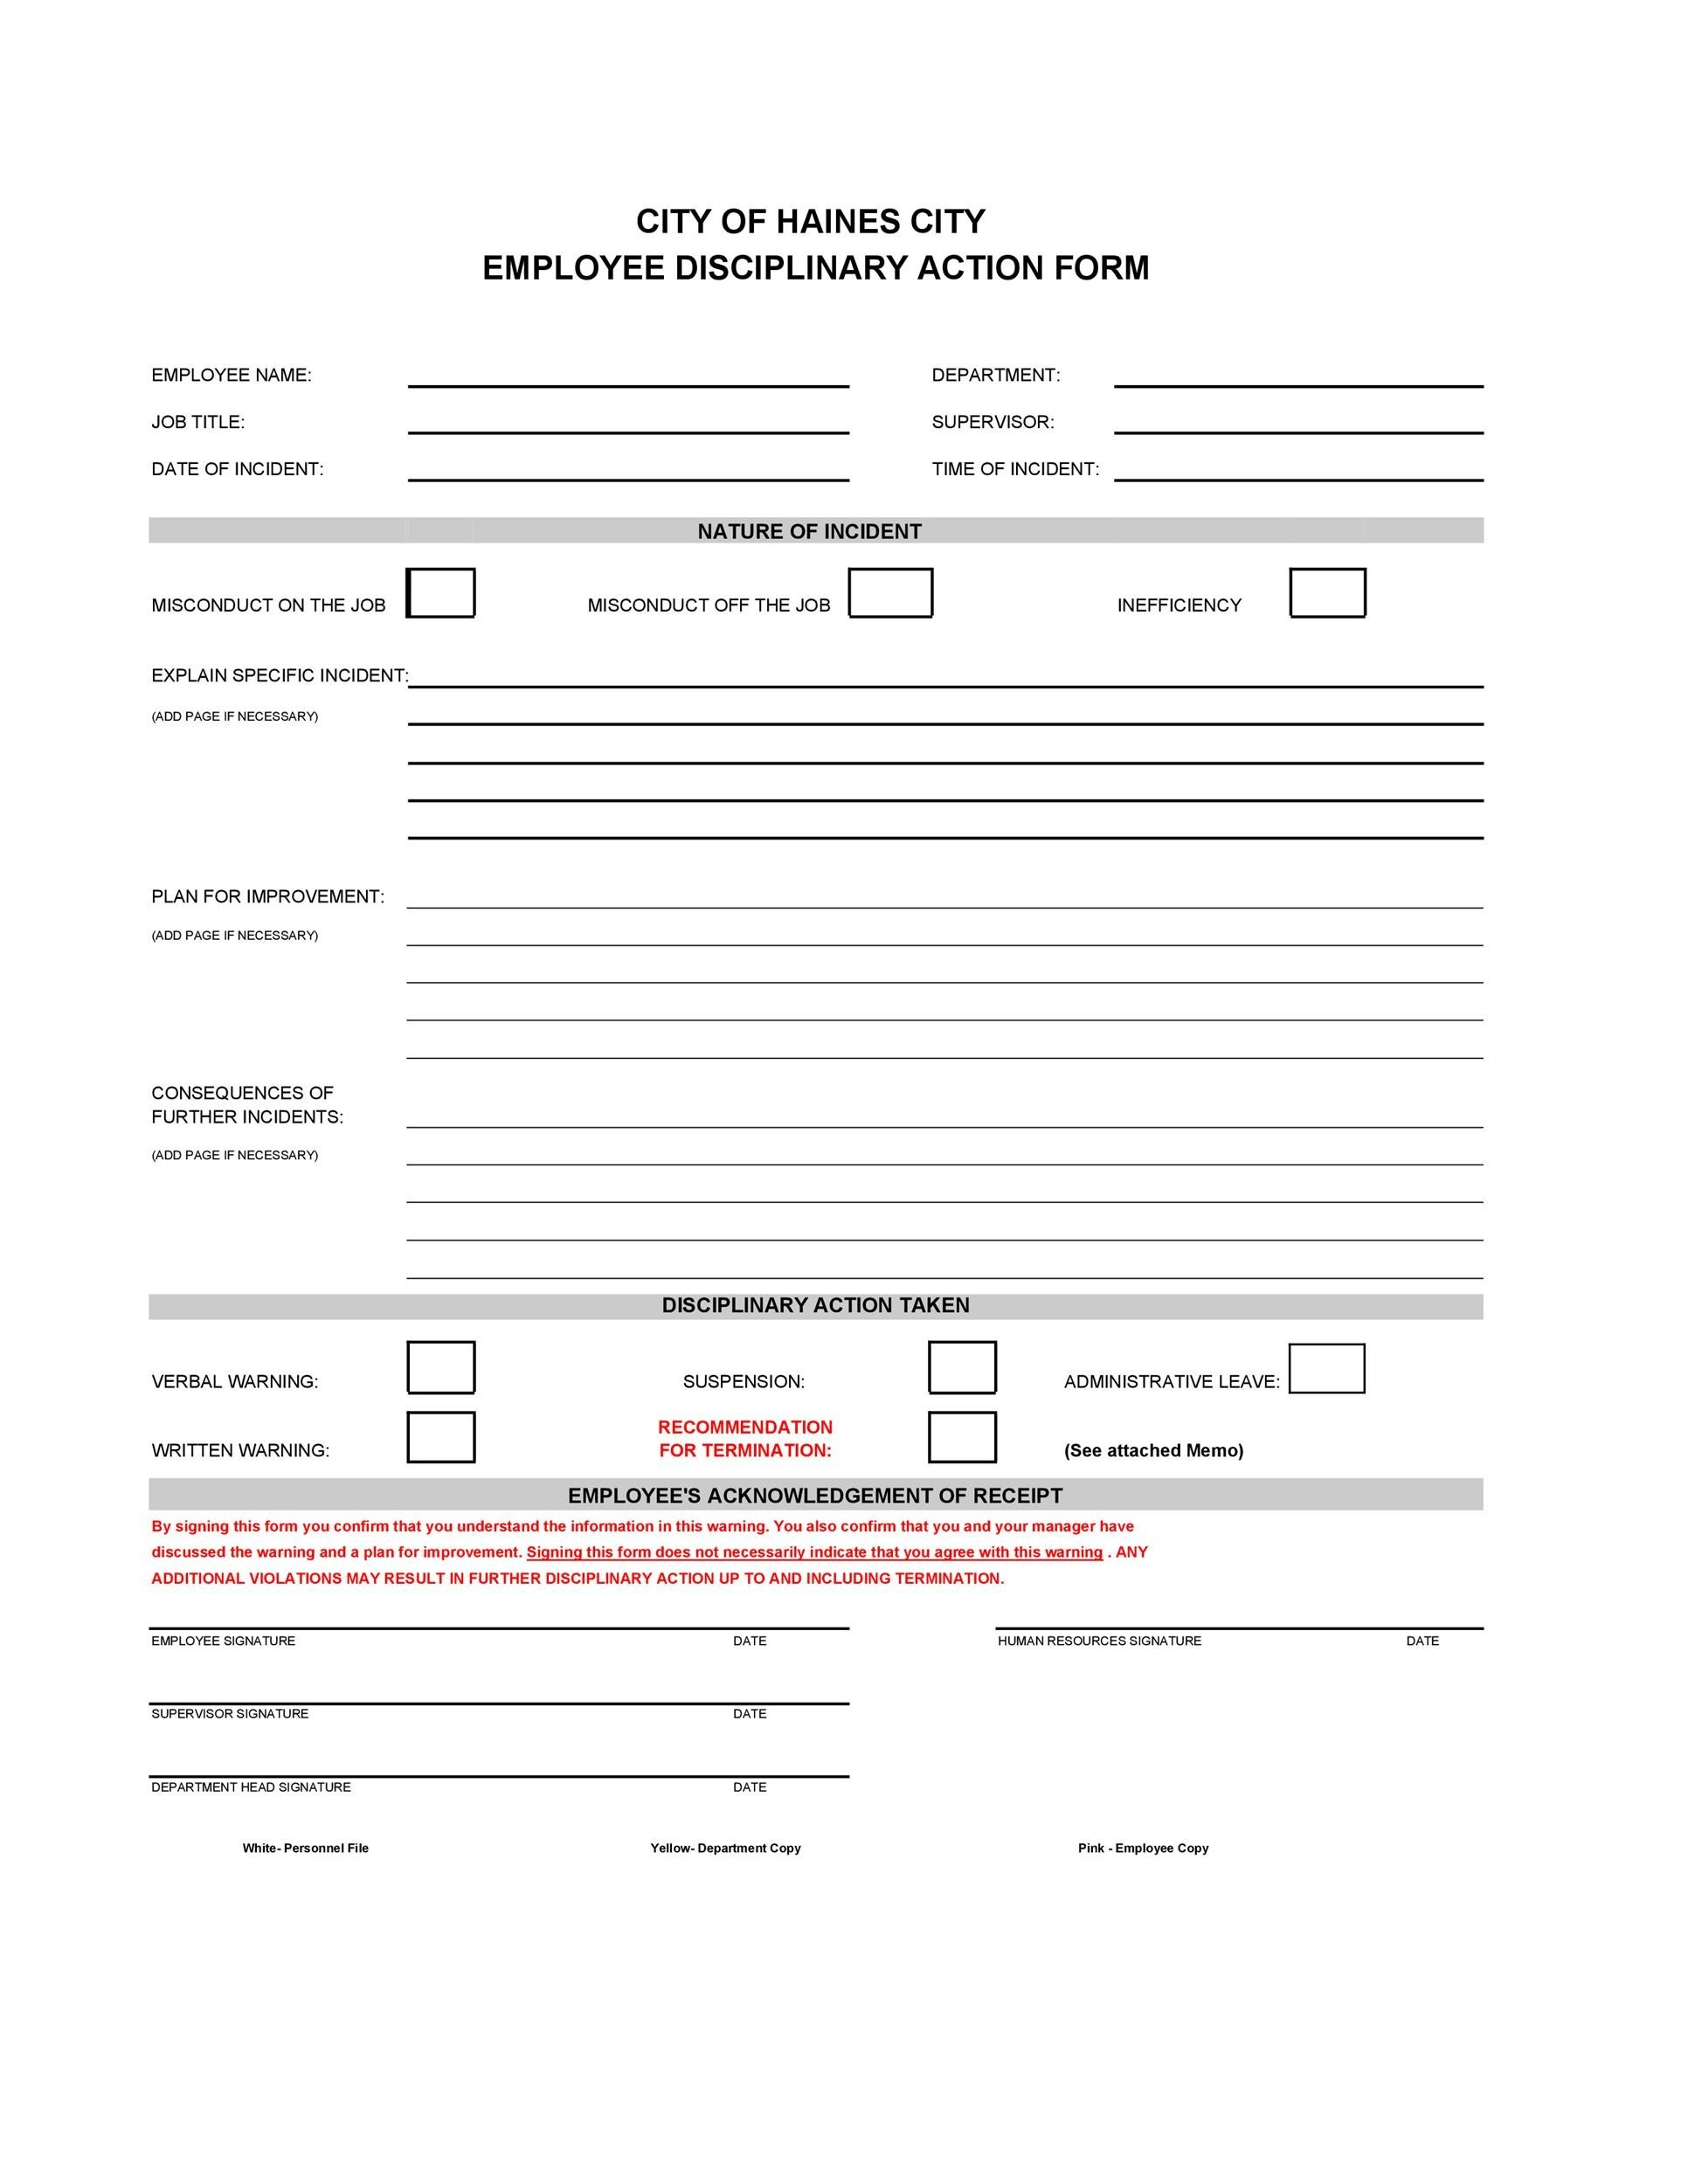 40 employee disciplinary action forms